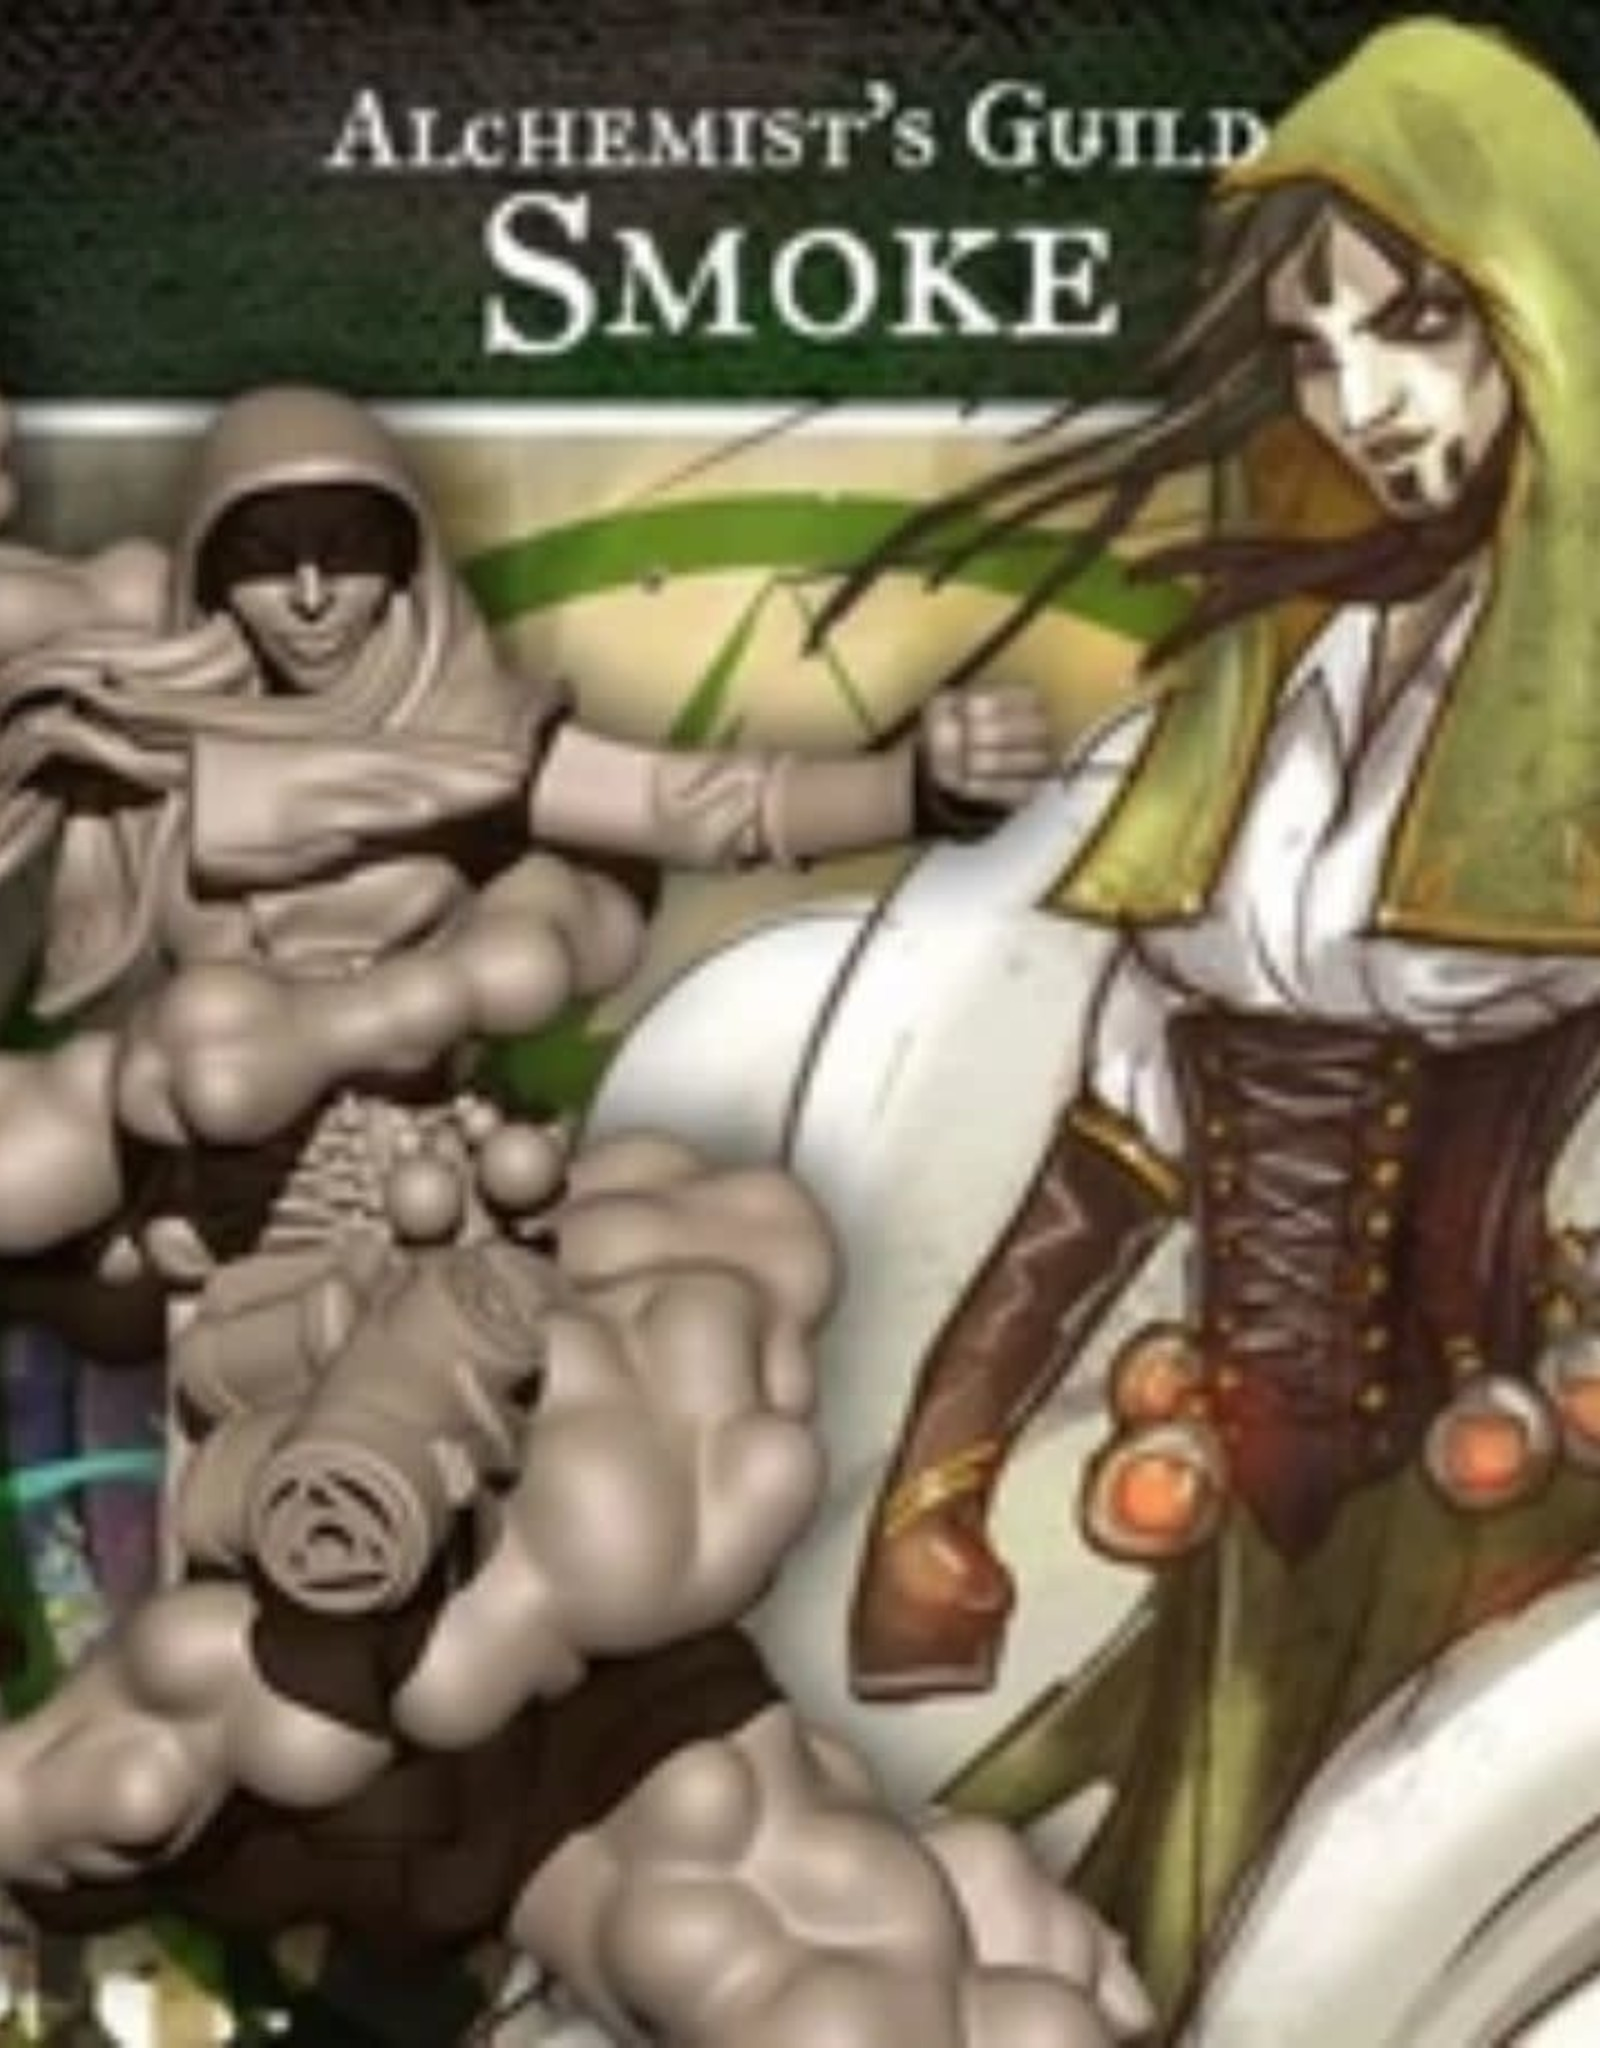 Guild Ball GB - Alchemist: Smoke